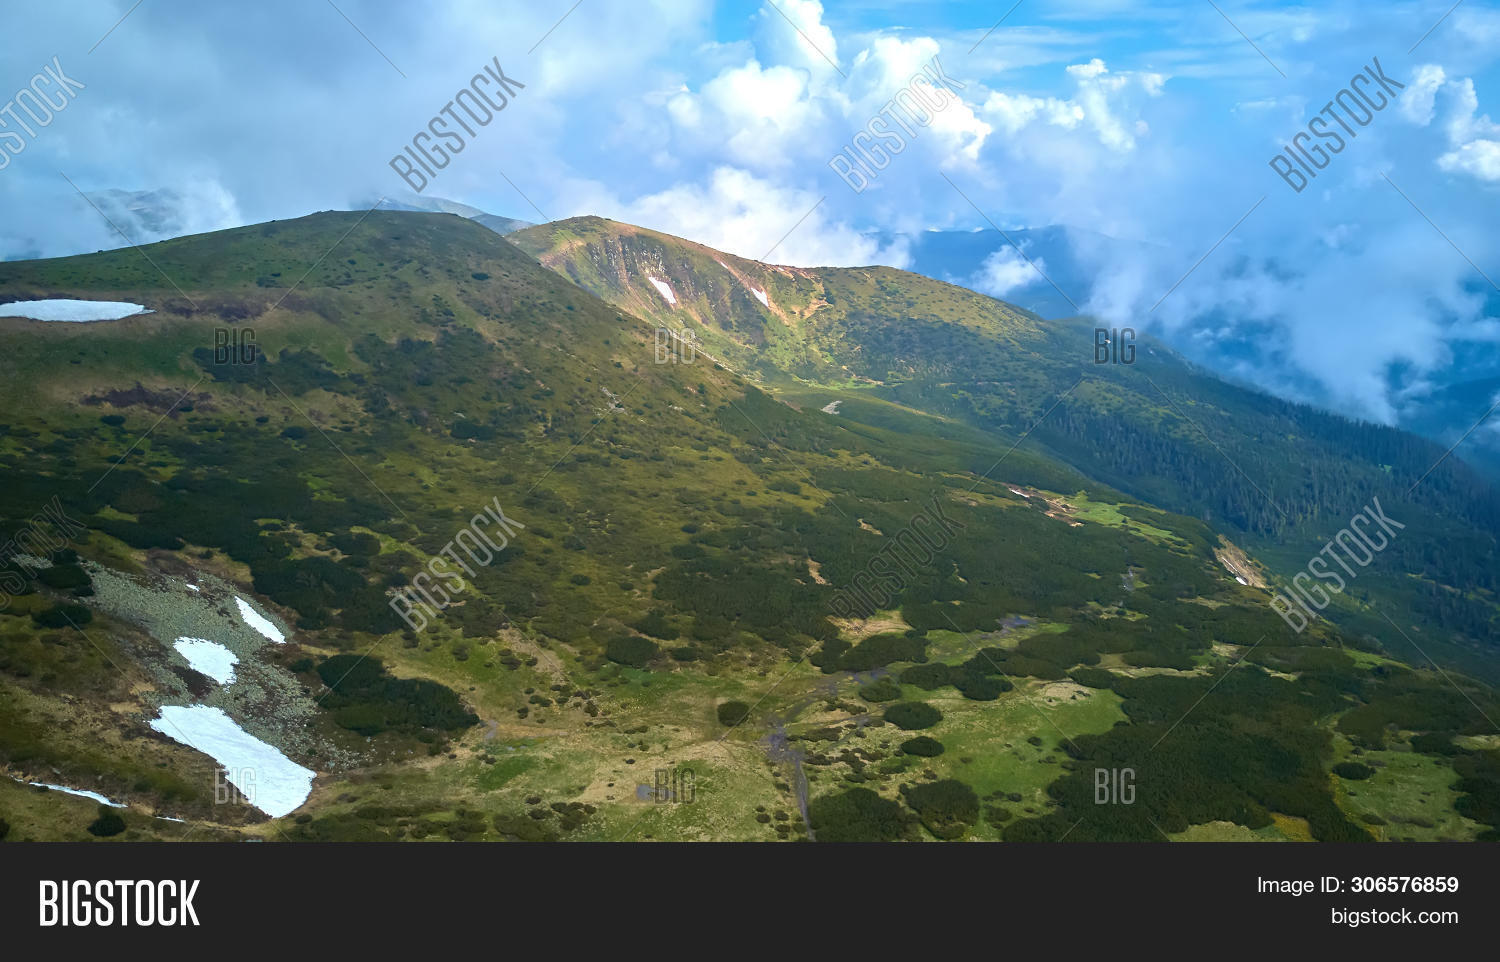 Mountain ridge with rocky outcrops. Panoramic view from the top of the ridge on background of valley. Carpathian Mountains